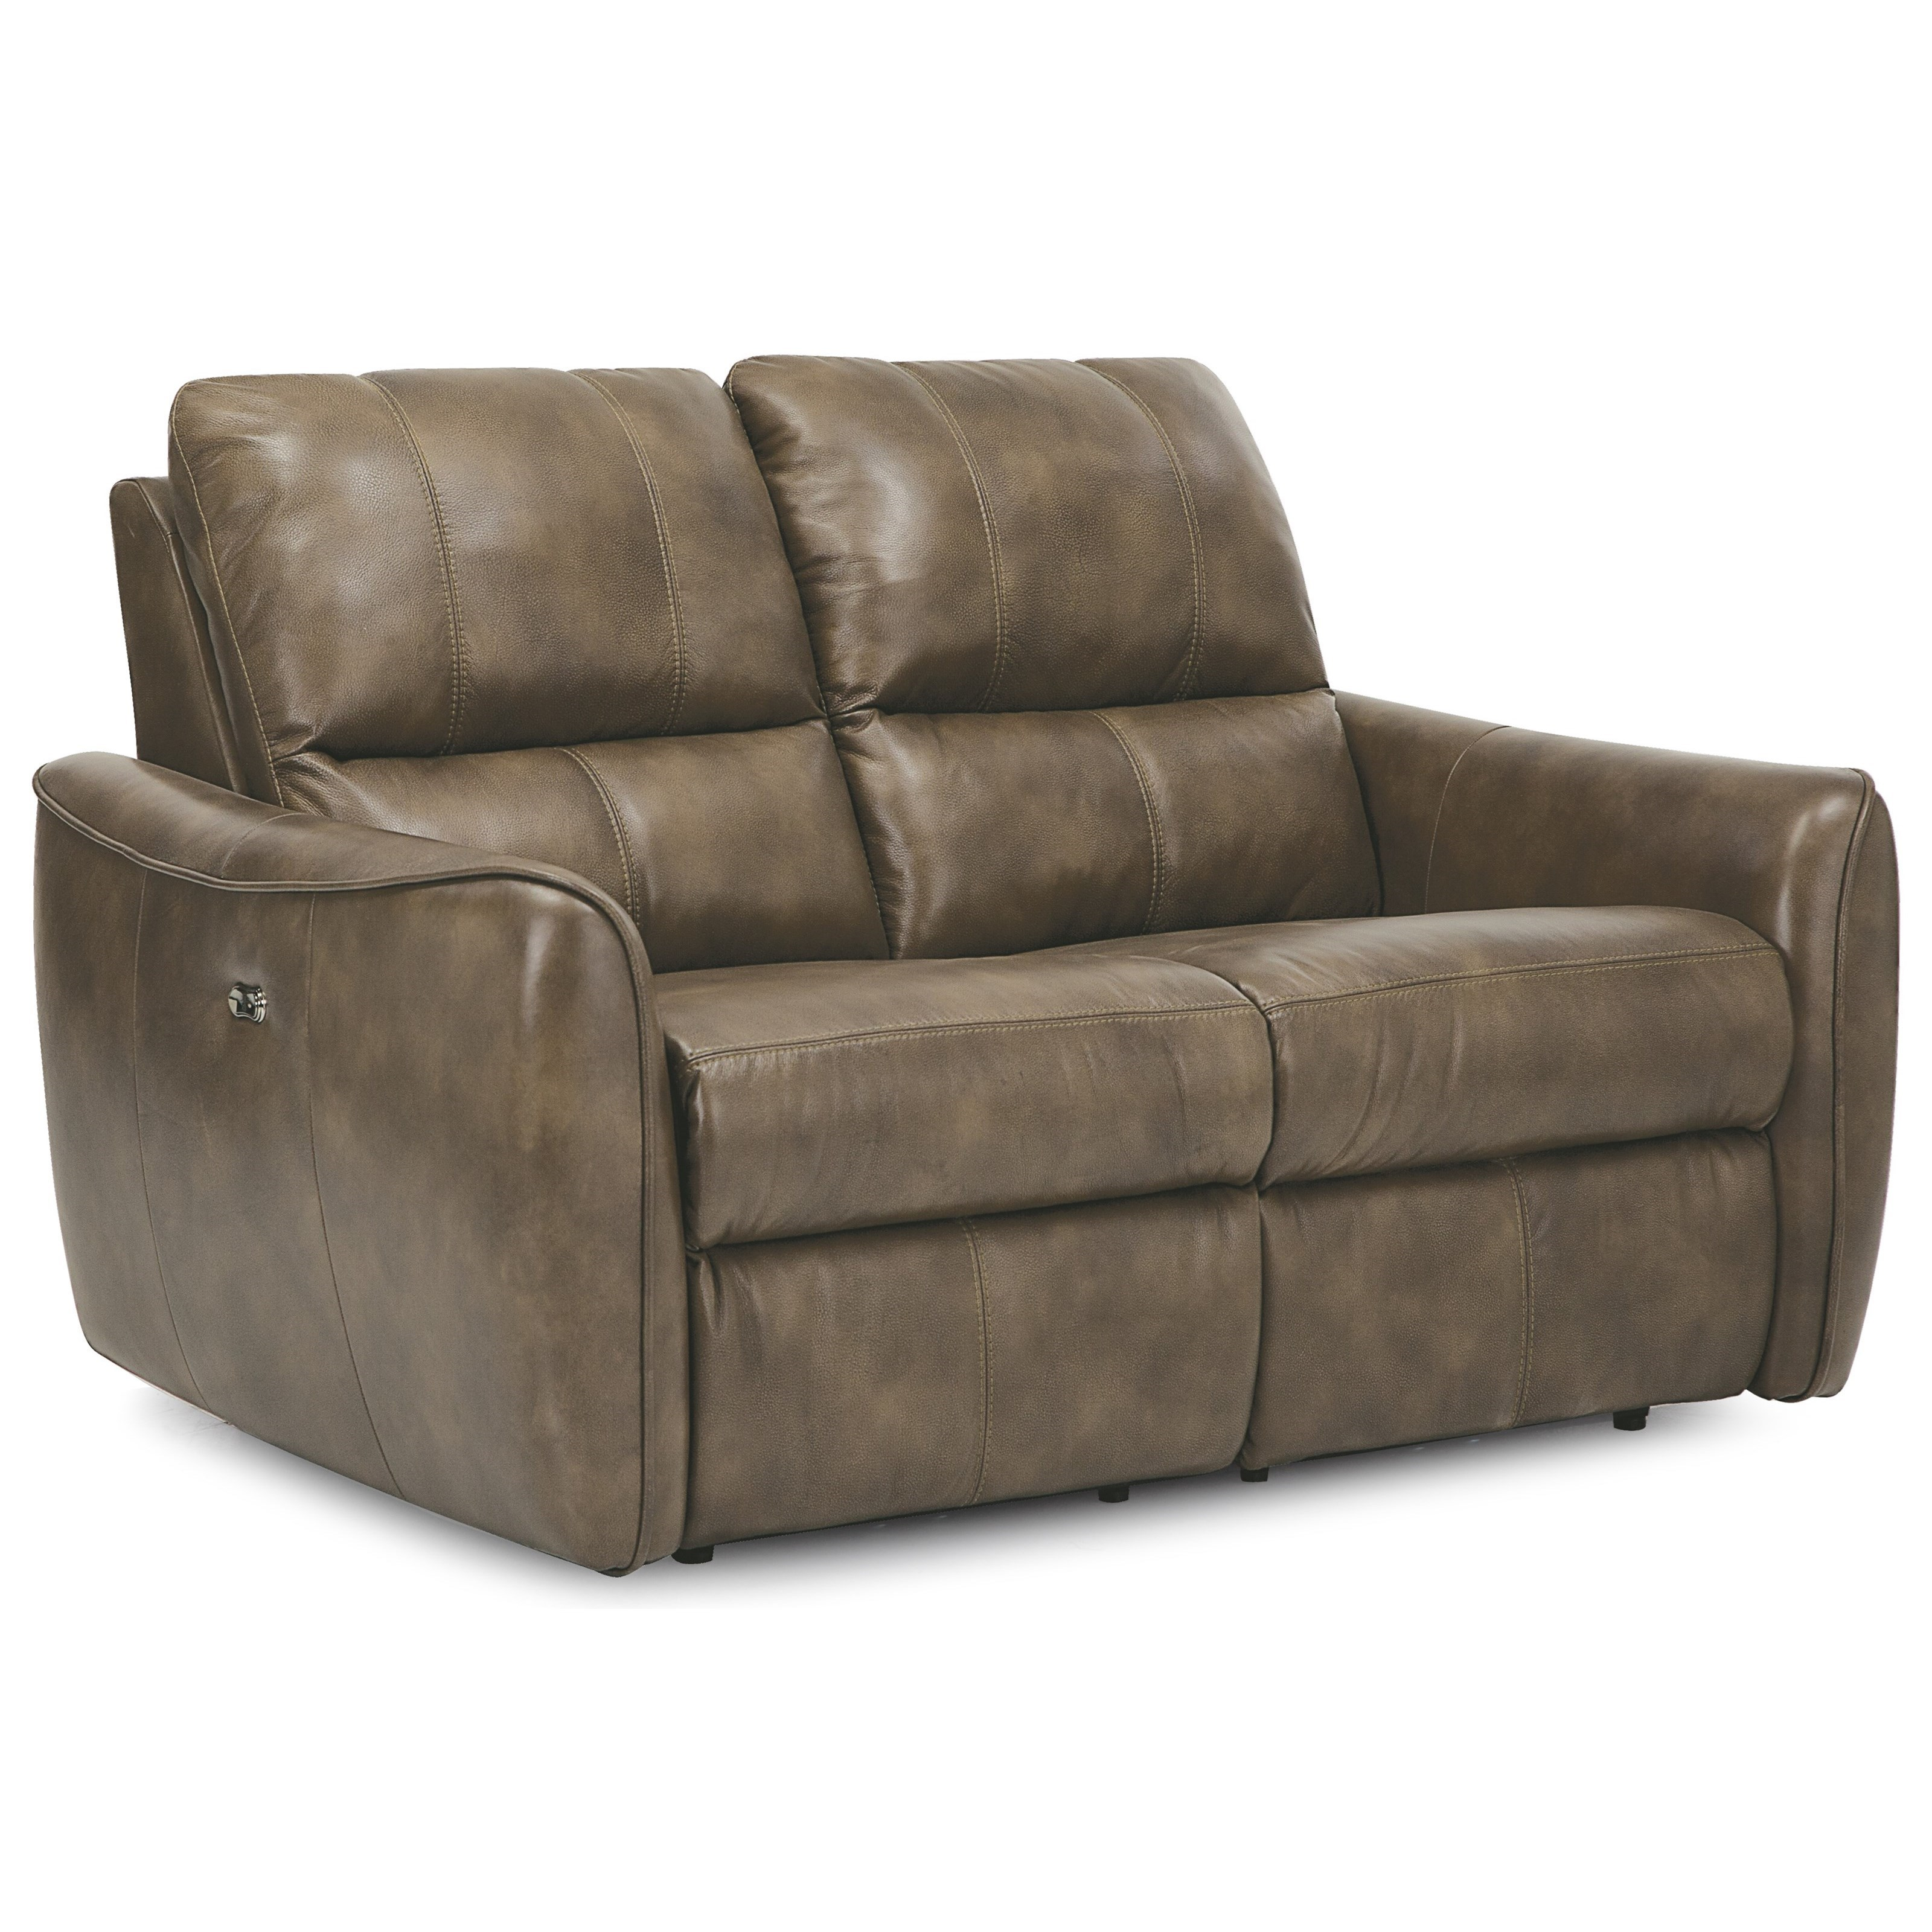 Arlo Loveseat Power Recliner by Palliser at Prime Brothers Furniture